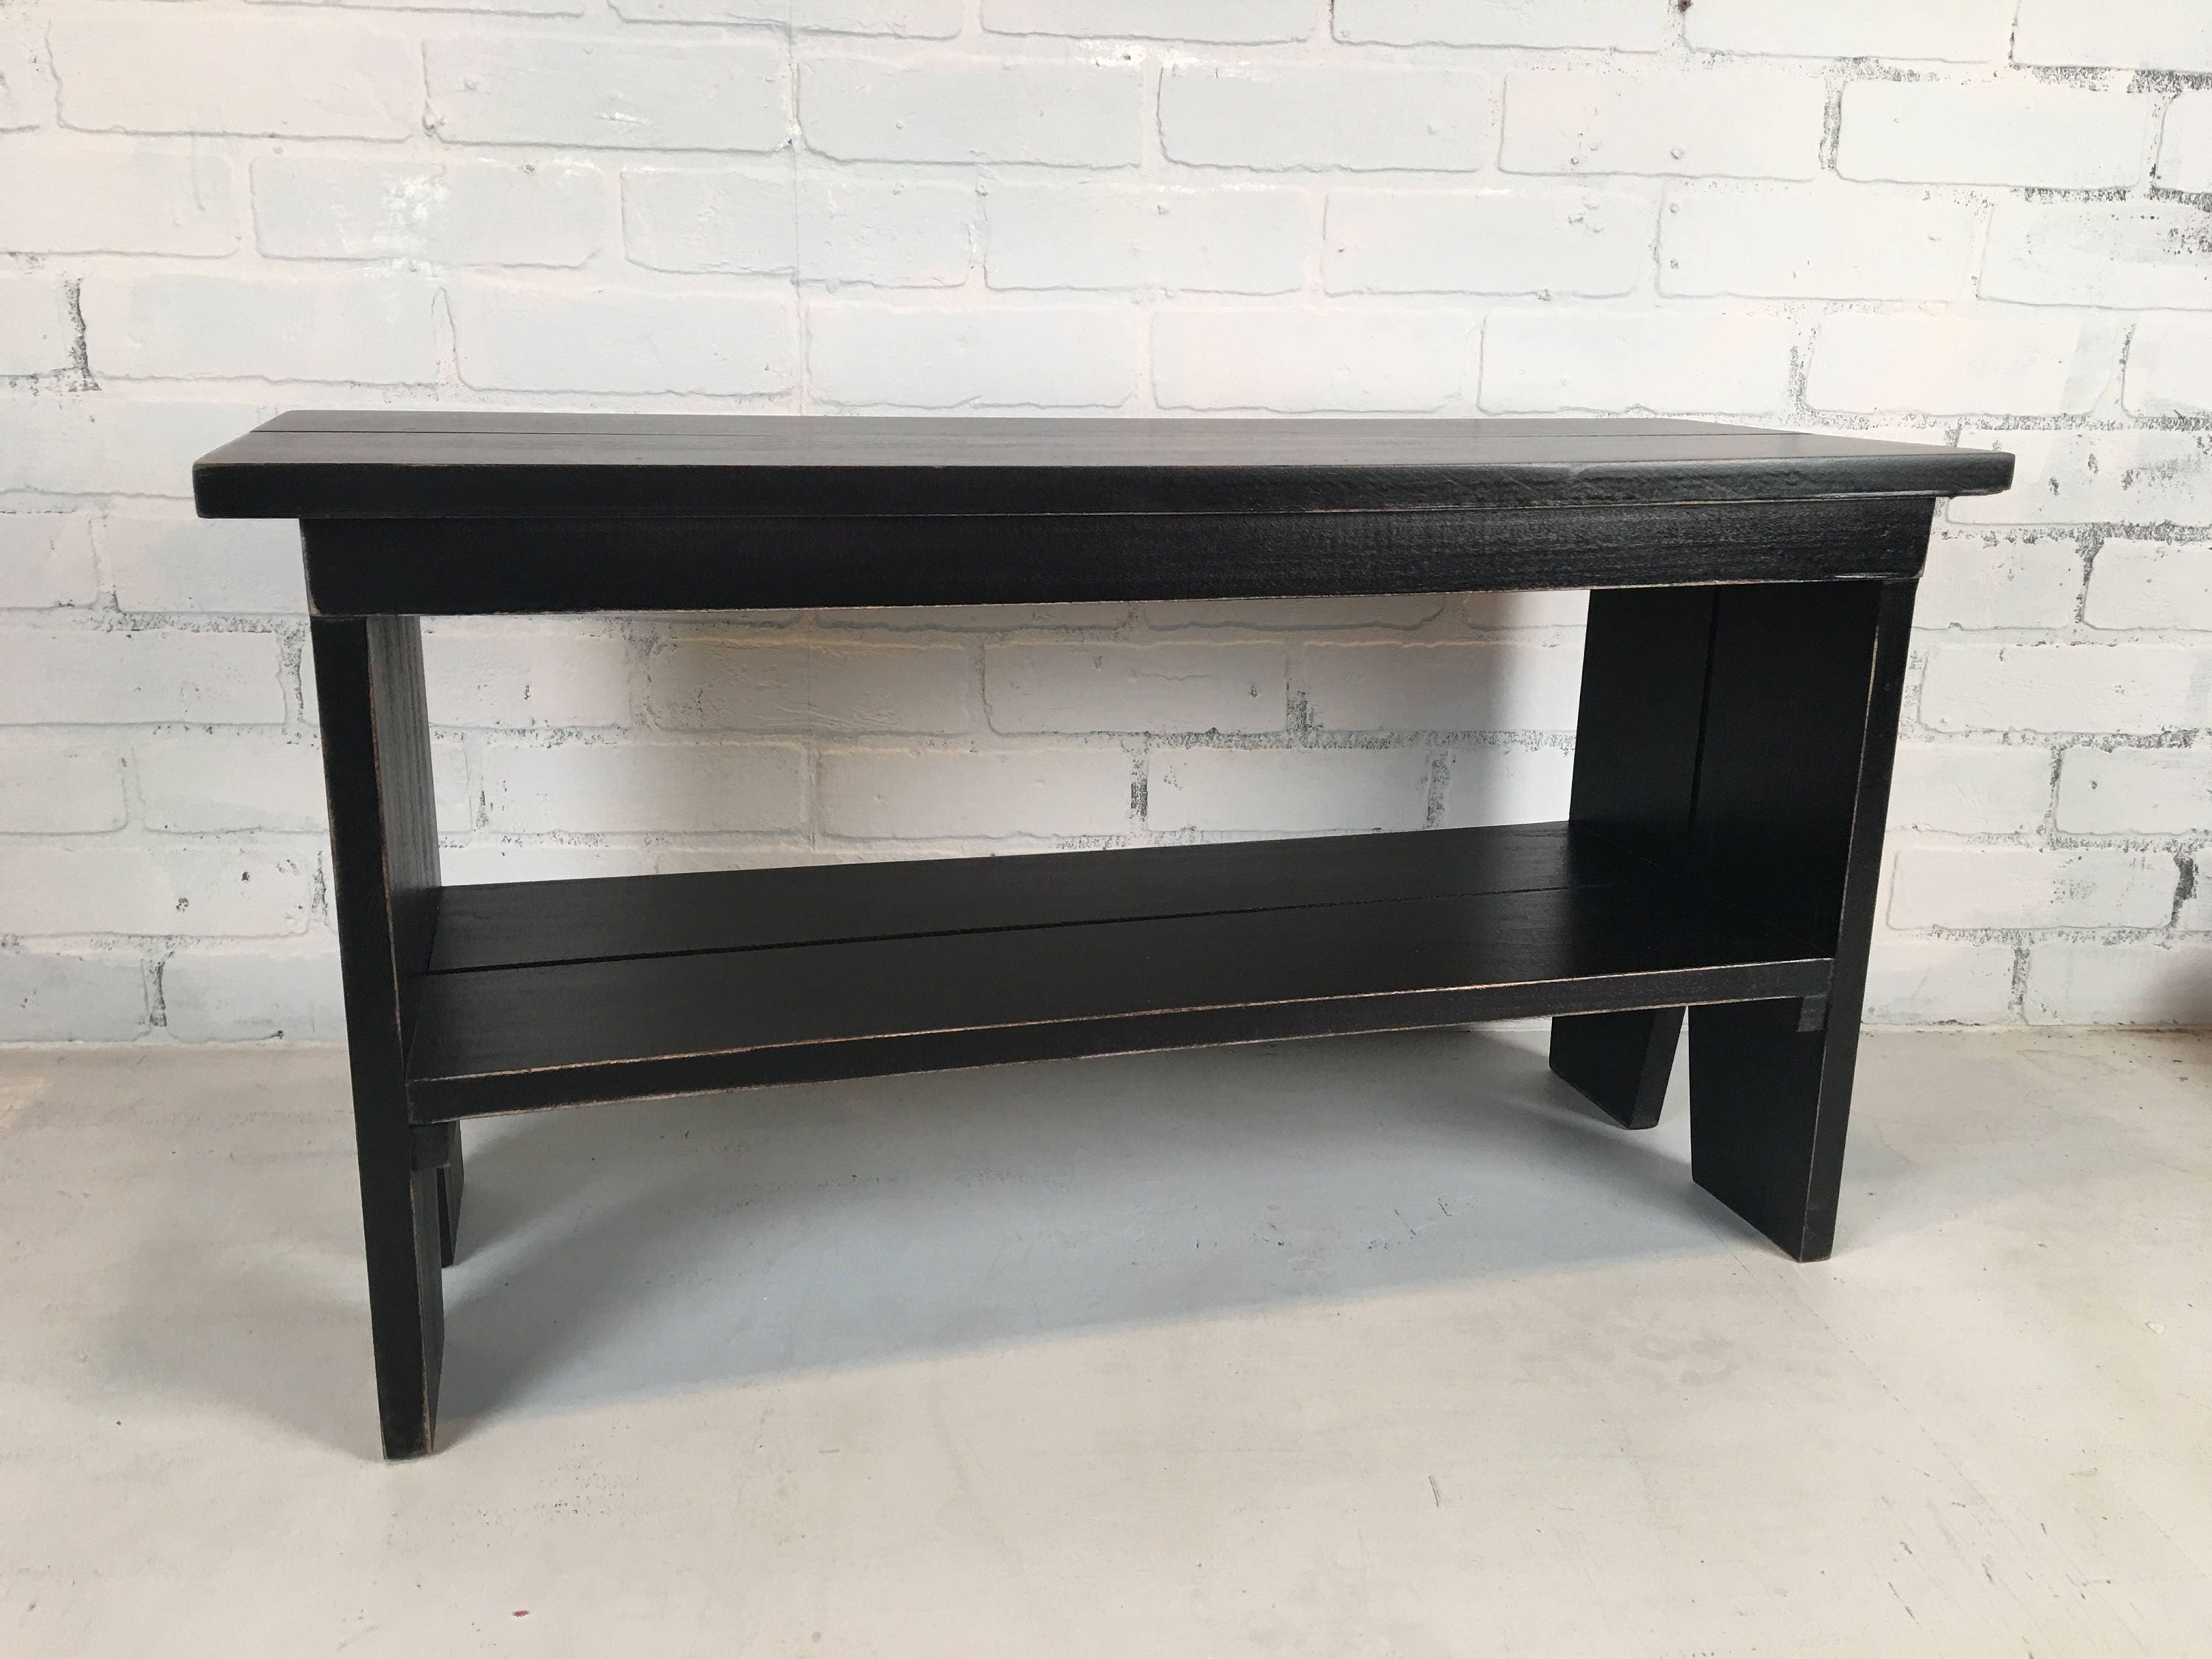 wood mid bottom dark tufted modhaus century cheap includes get deals bench gray with black button and find espresso shopping legs quotations metal on guides